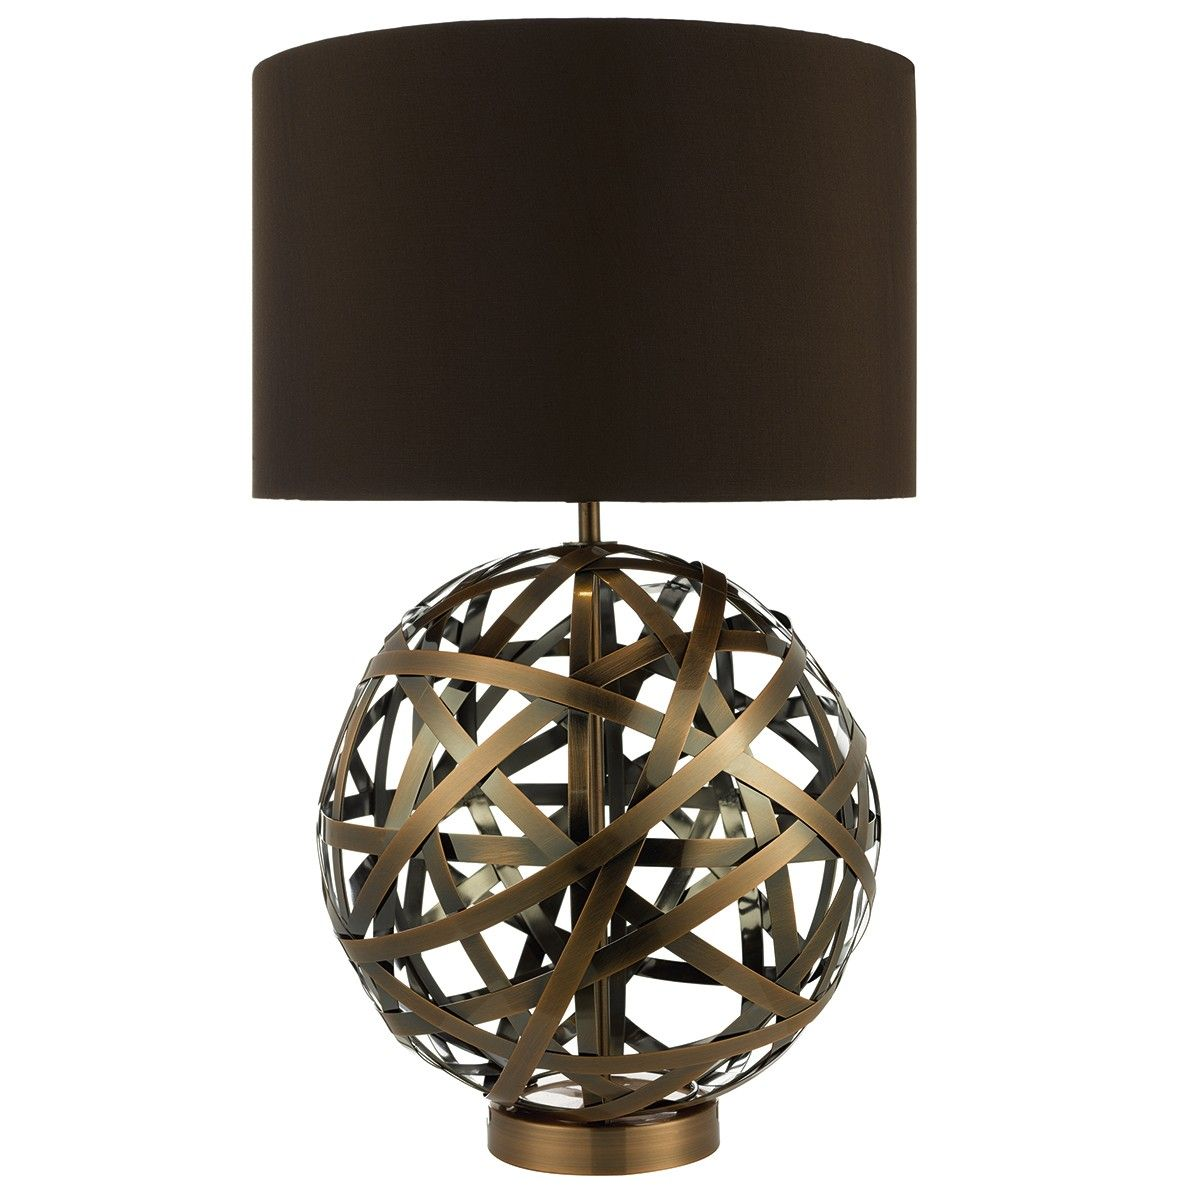 Voyage Tl Woven Antique Copper Ball With Matching Lined Shade Voyage Is A Large Atlas Style Ball Formed From Artful Lamp Unusual Lamps Copper Table Lamp